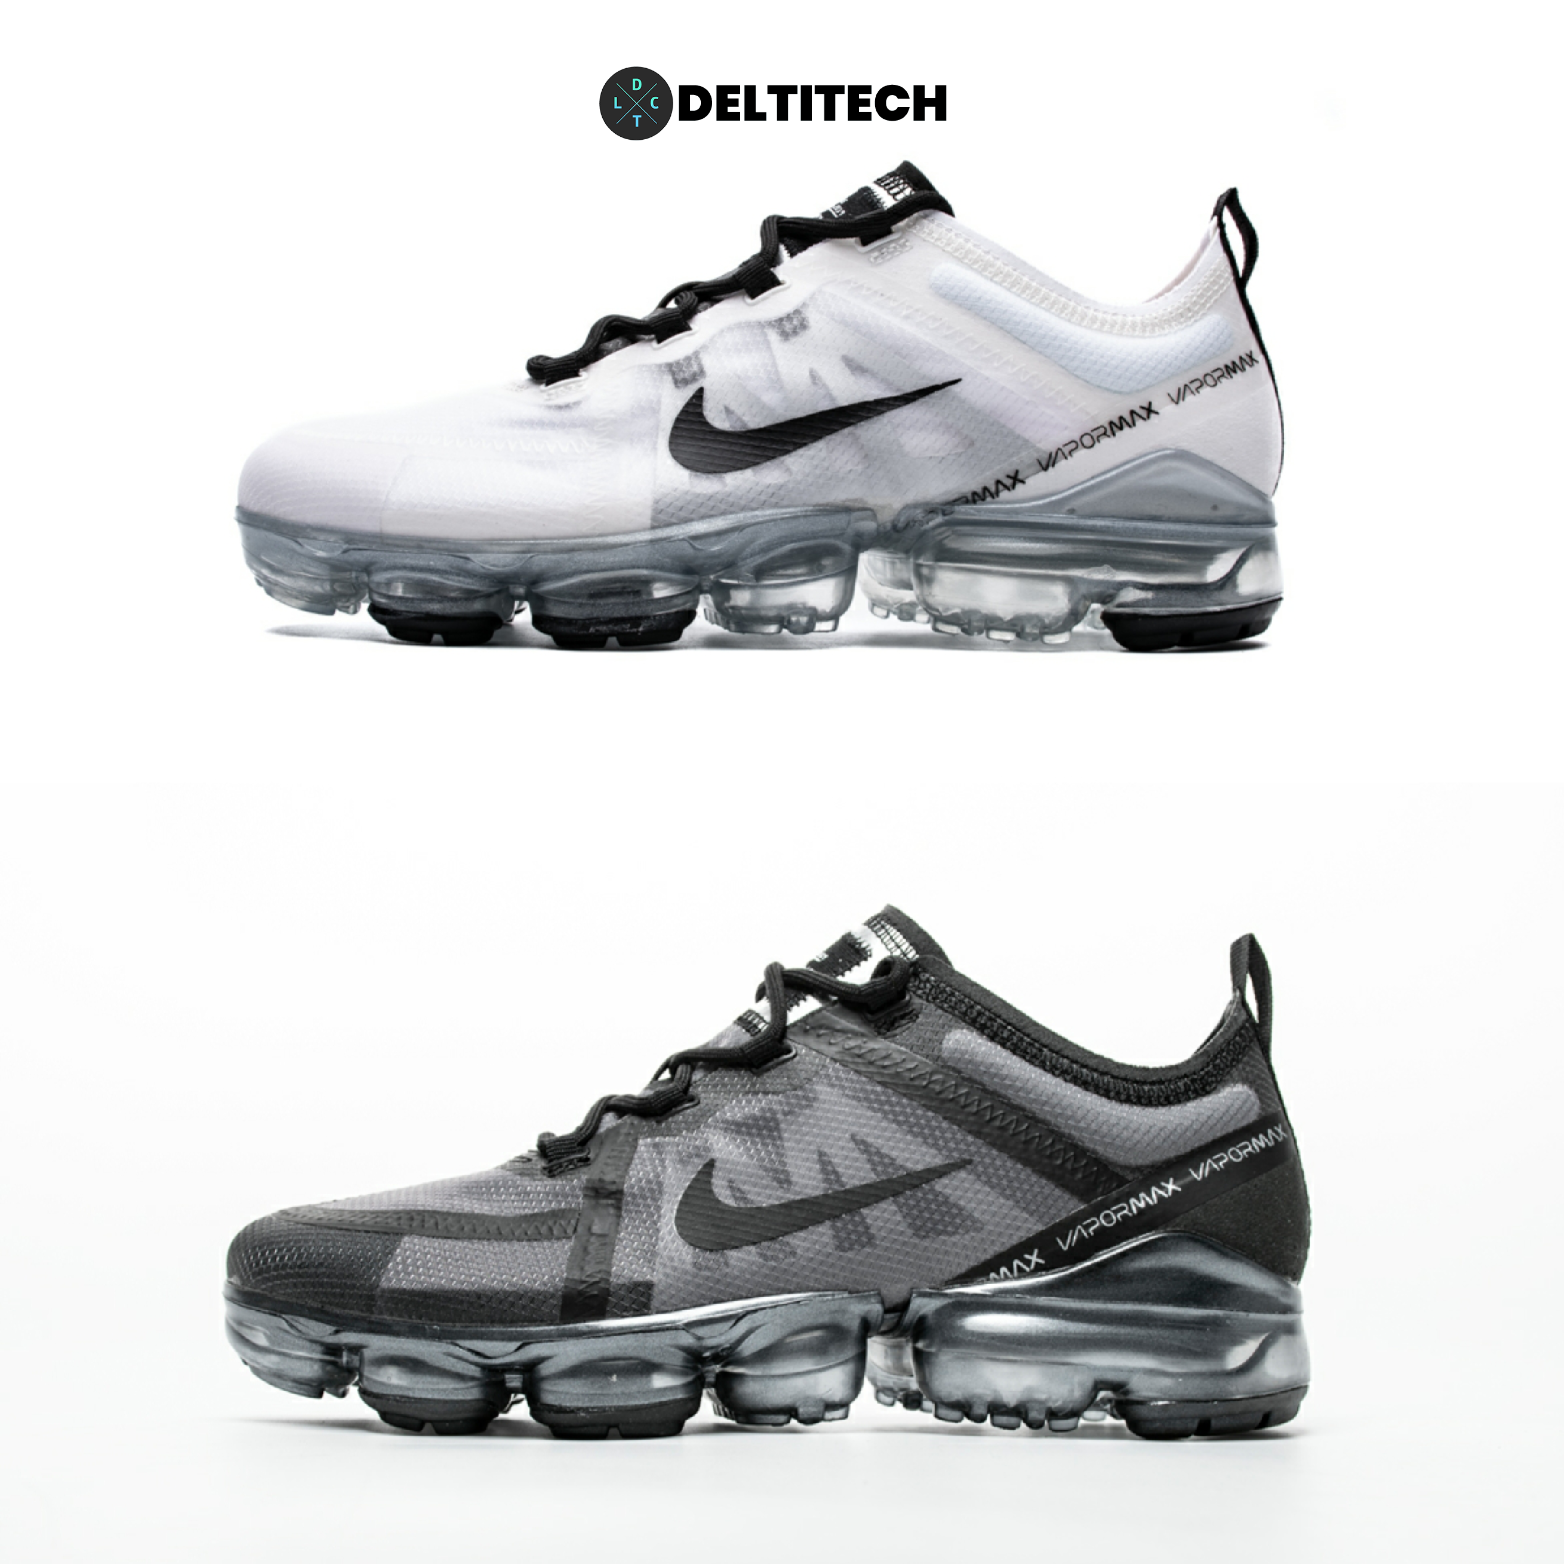 Nike Vapormax 2019 Unisex Collection in